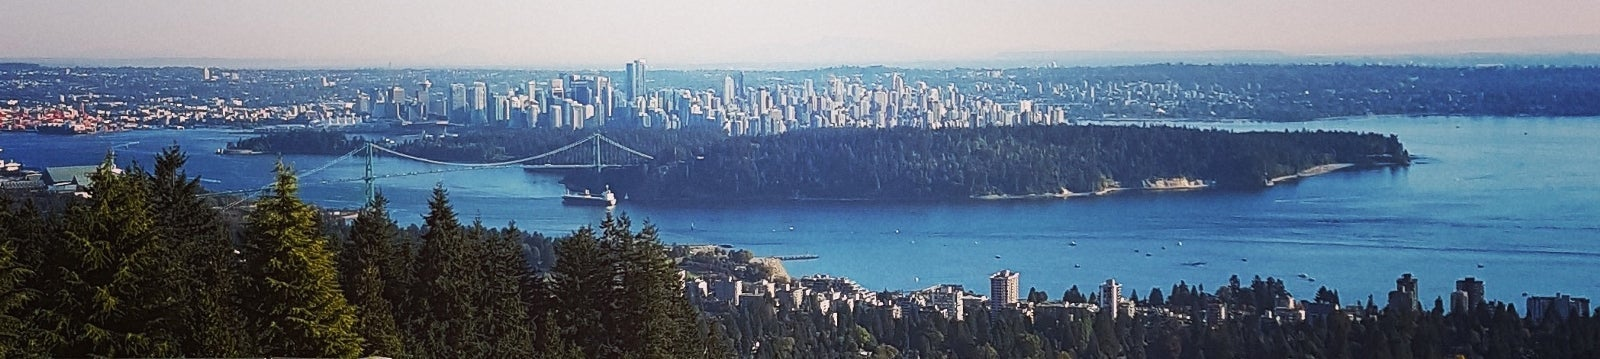 vancouver, yvr, real estate, realtor, property for sale, British Columbia